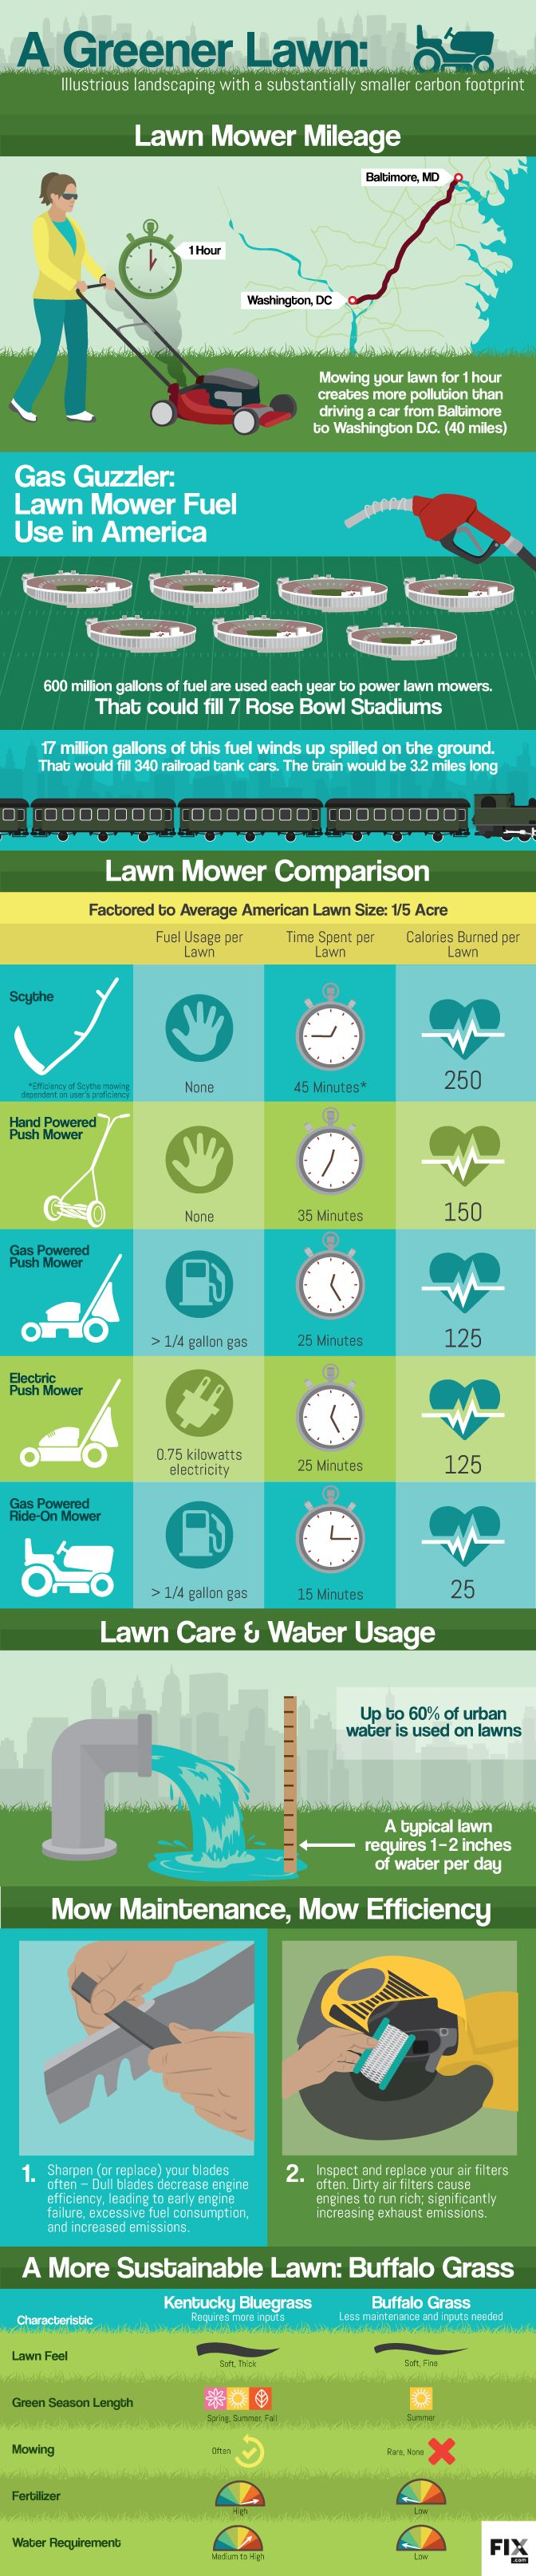 A Greener Lawn Reducing the Carbon Footprint of Your Lawn Mower #infographic…